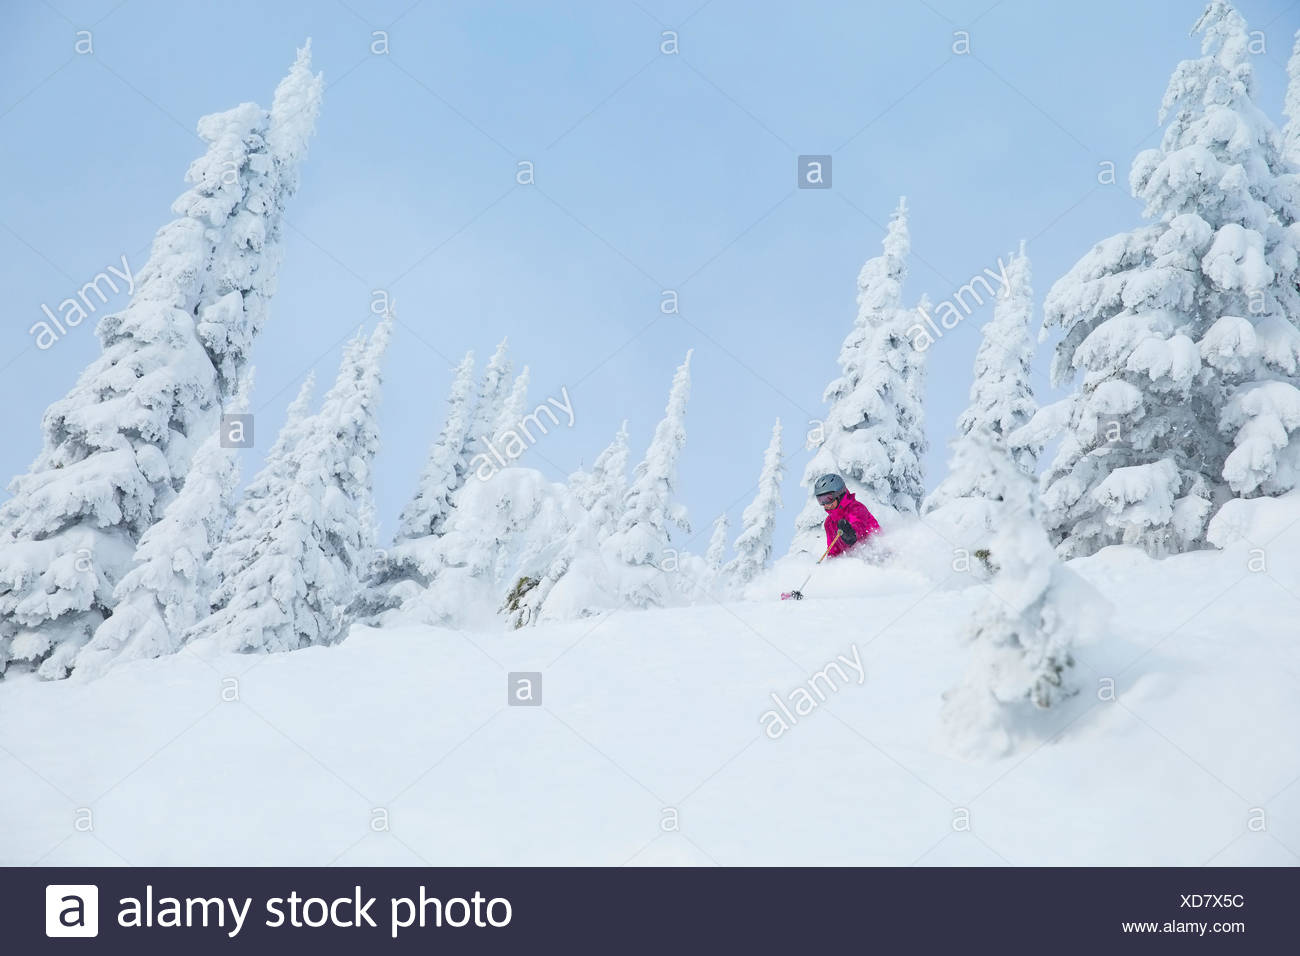 Low angle view of mature woman on ski slope - Stock Image